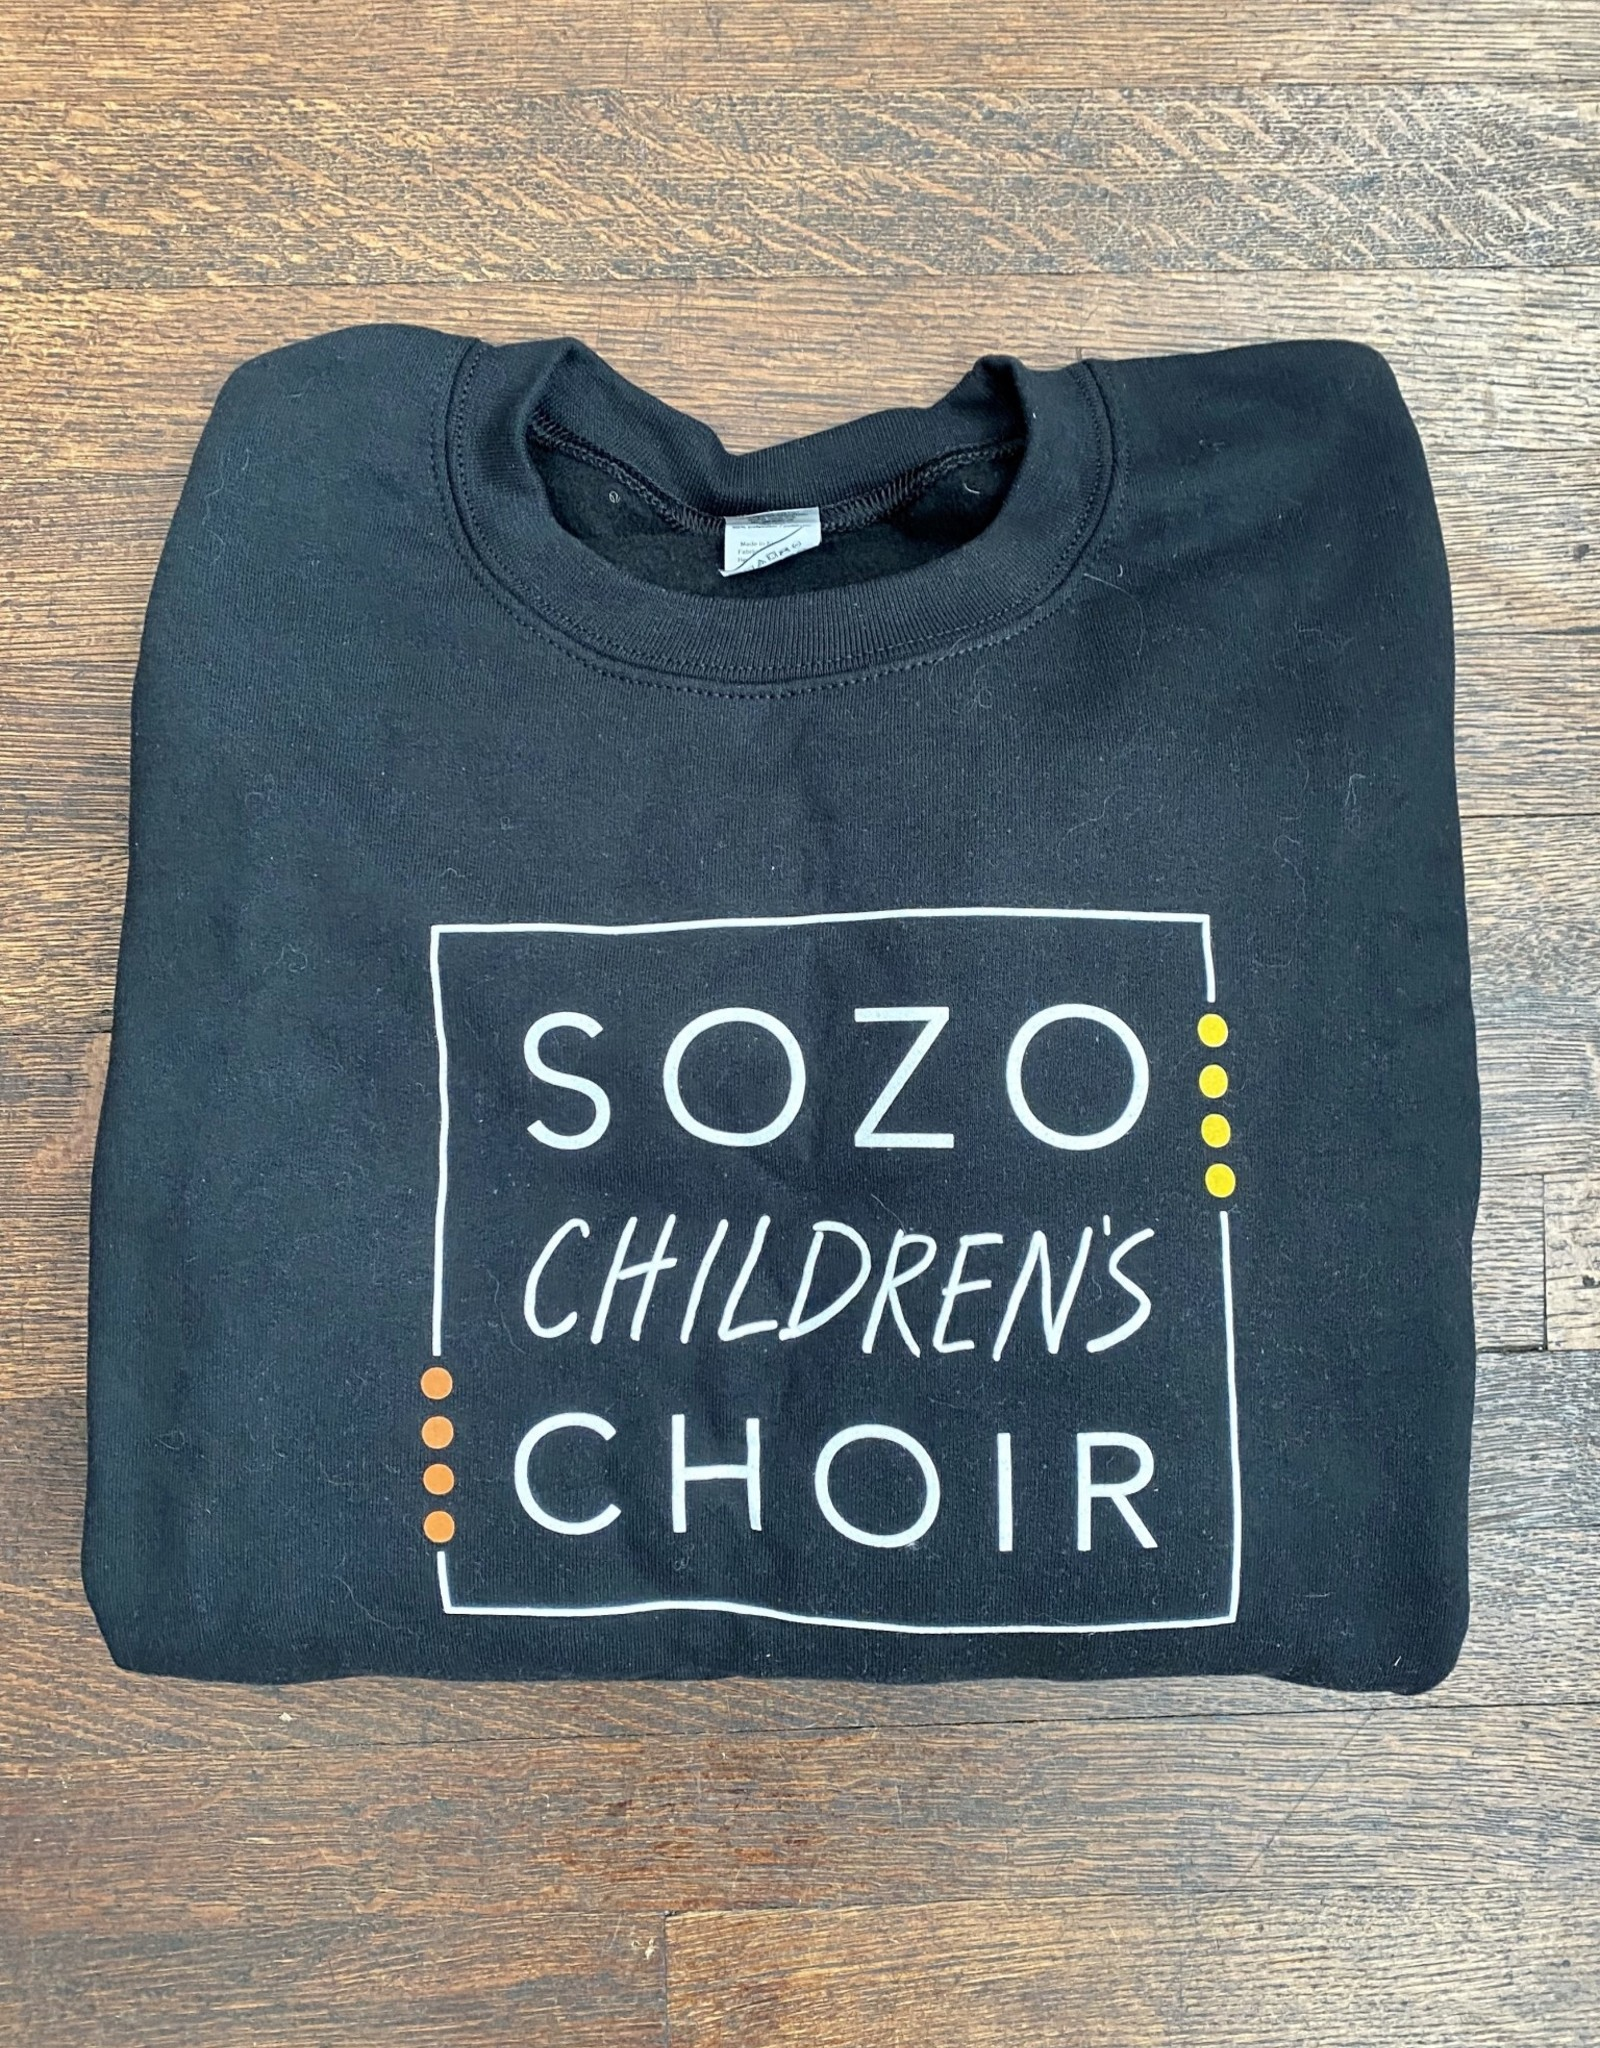 Sozo Choir Sweatshirt